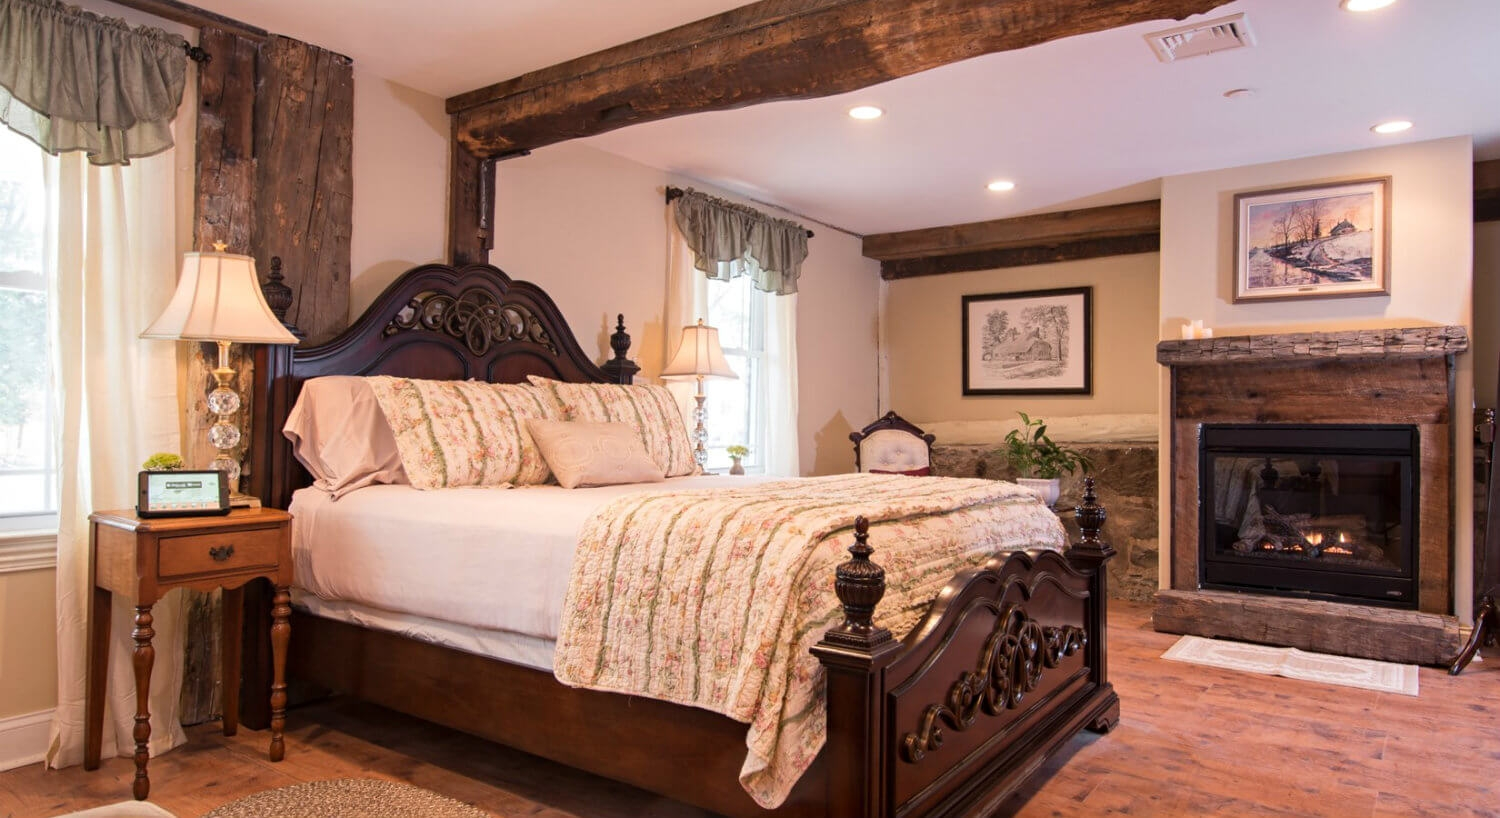 Cozy bedroom with natural wood fireplace and trim; featuring dark wood bed with white linens